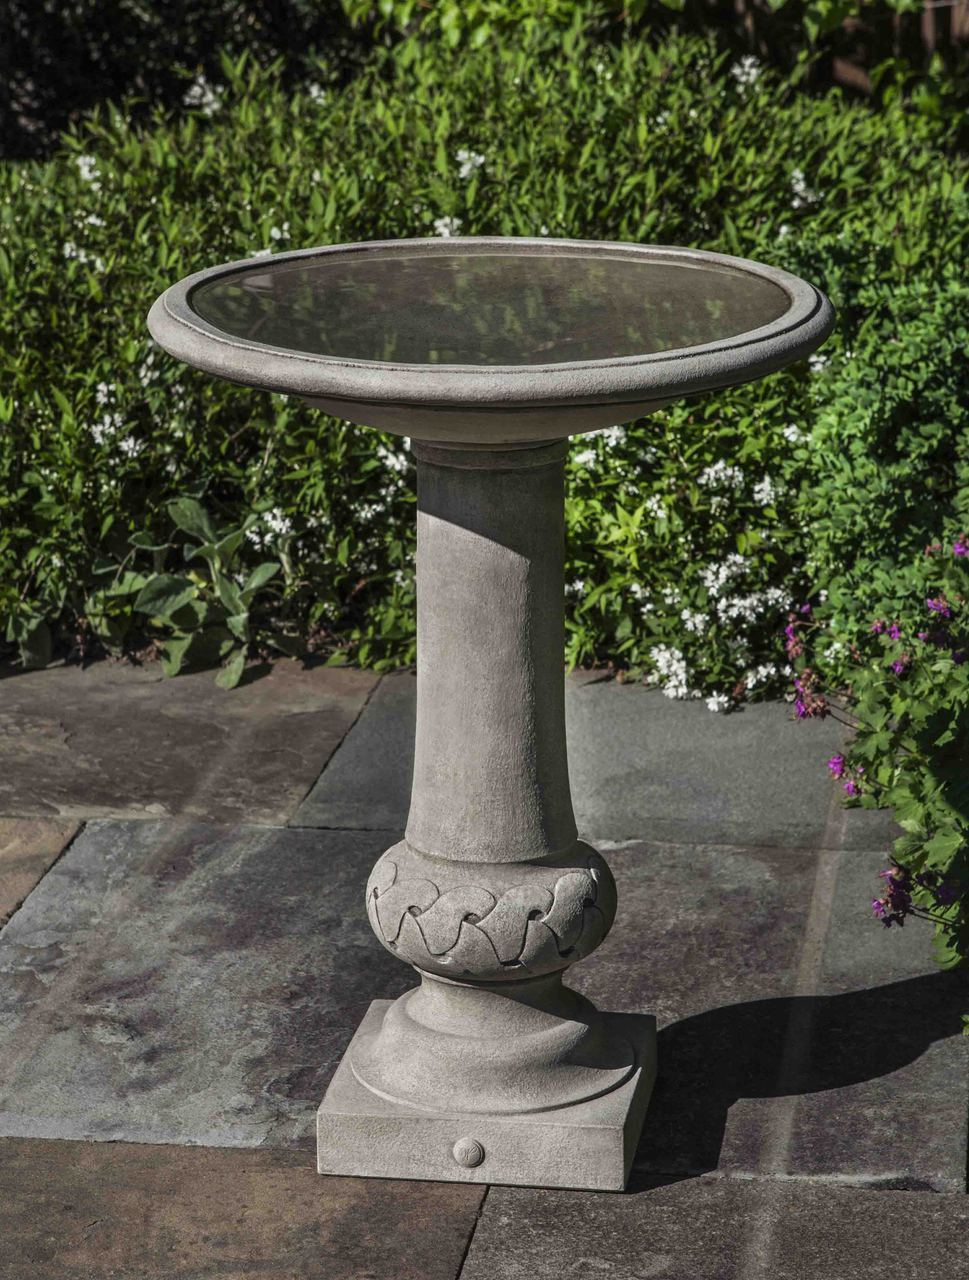 Williamsburg Knot Garden Birdbath